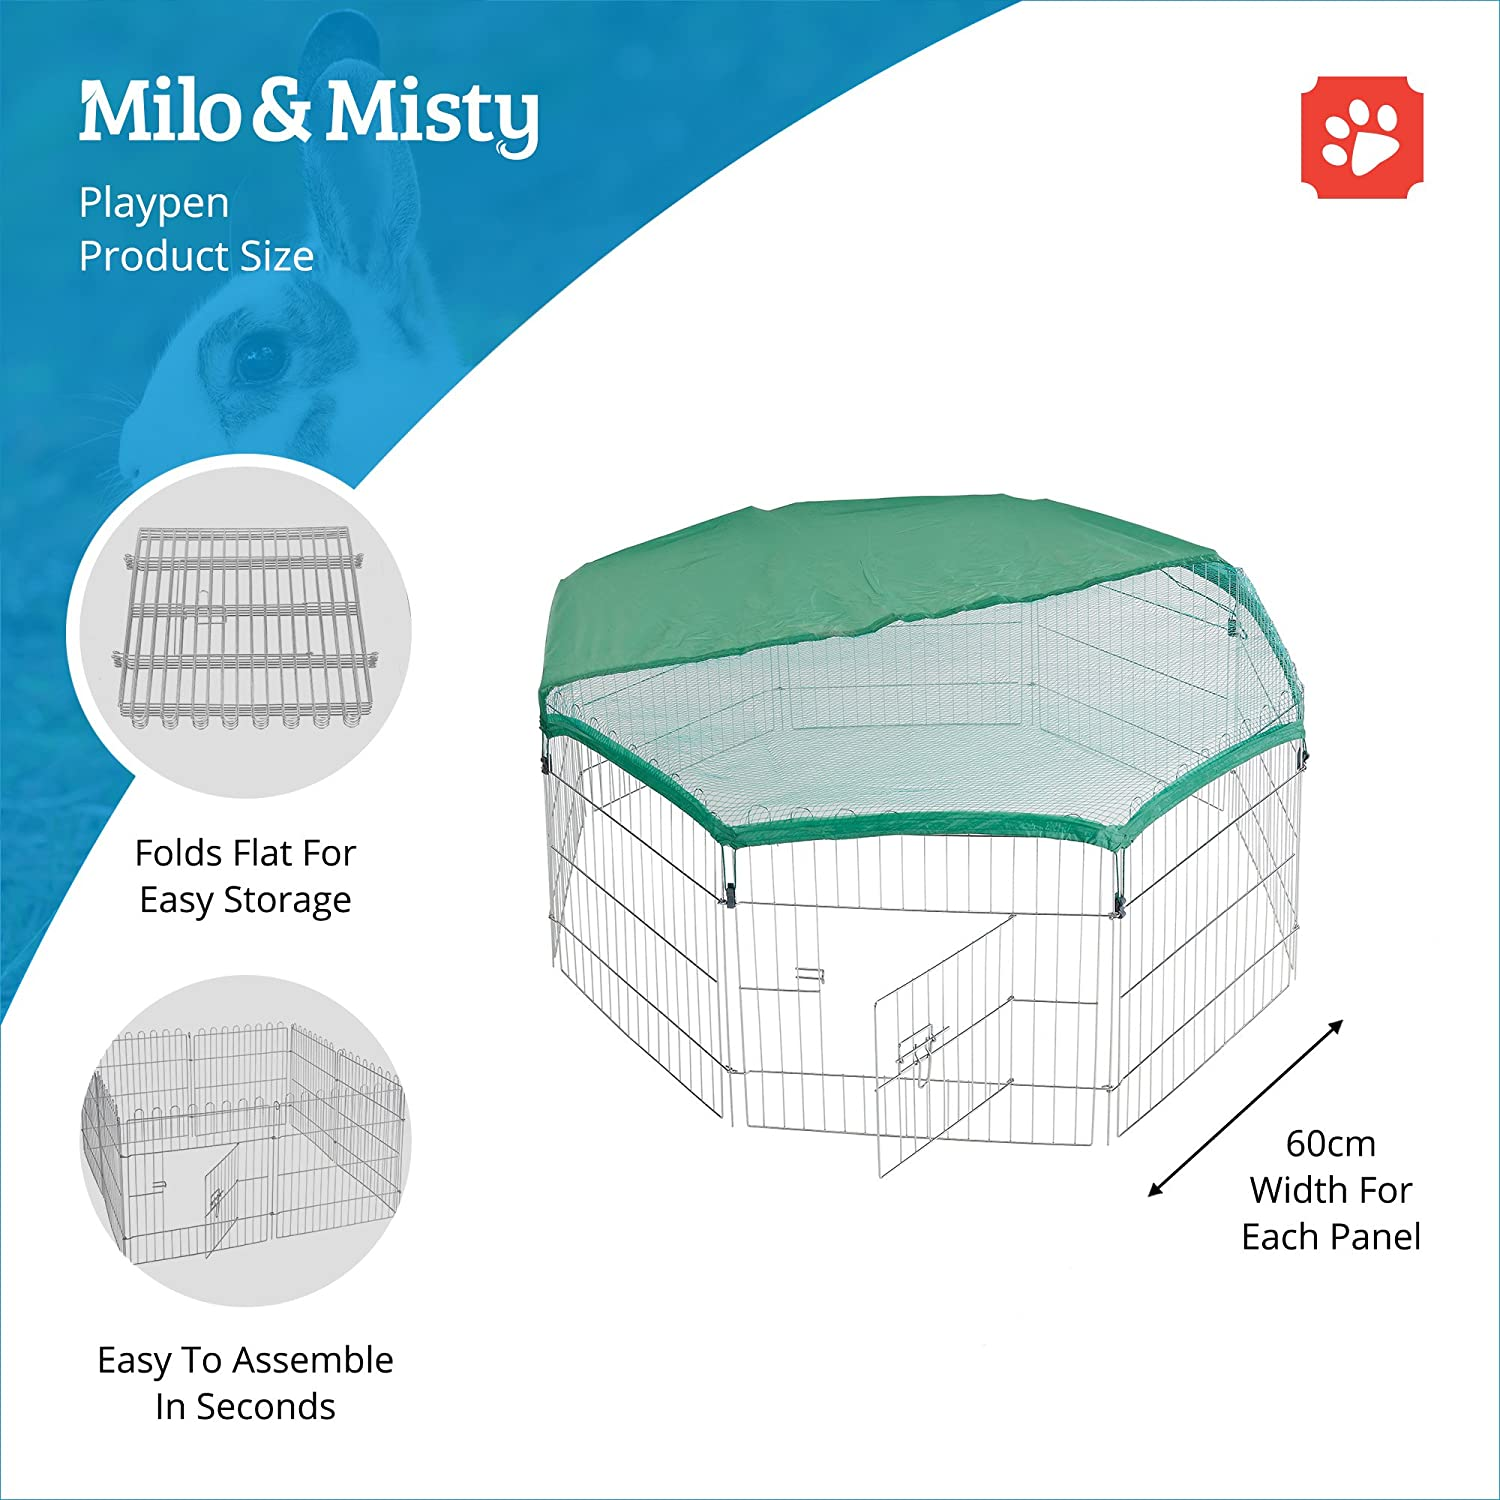 Milo Misty Playpen For Pets Folding And Portable Outdoor Cage Esb Oasis Wiring Diagram Dog Puppy Rabbit Guinea Pig 60 X 8 Steel Panel With Safety Sun Protection Net